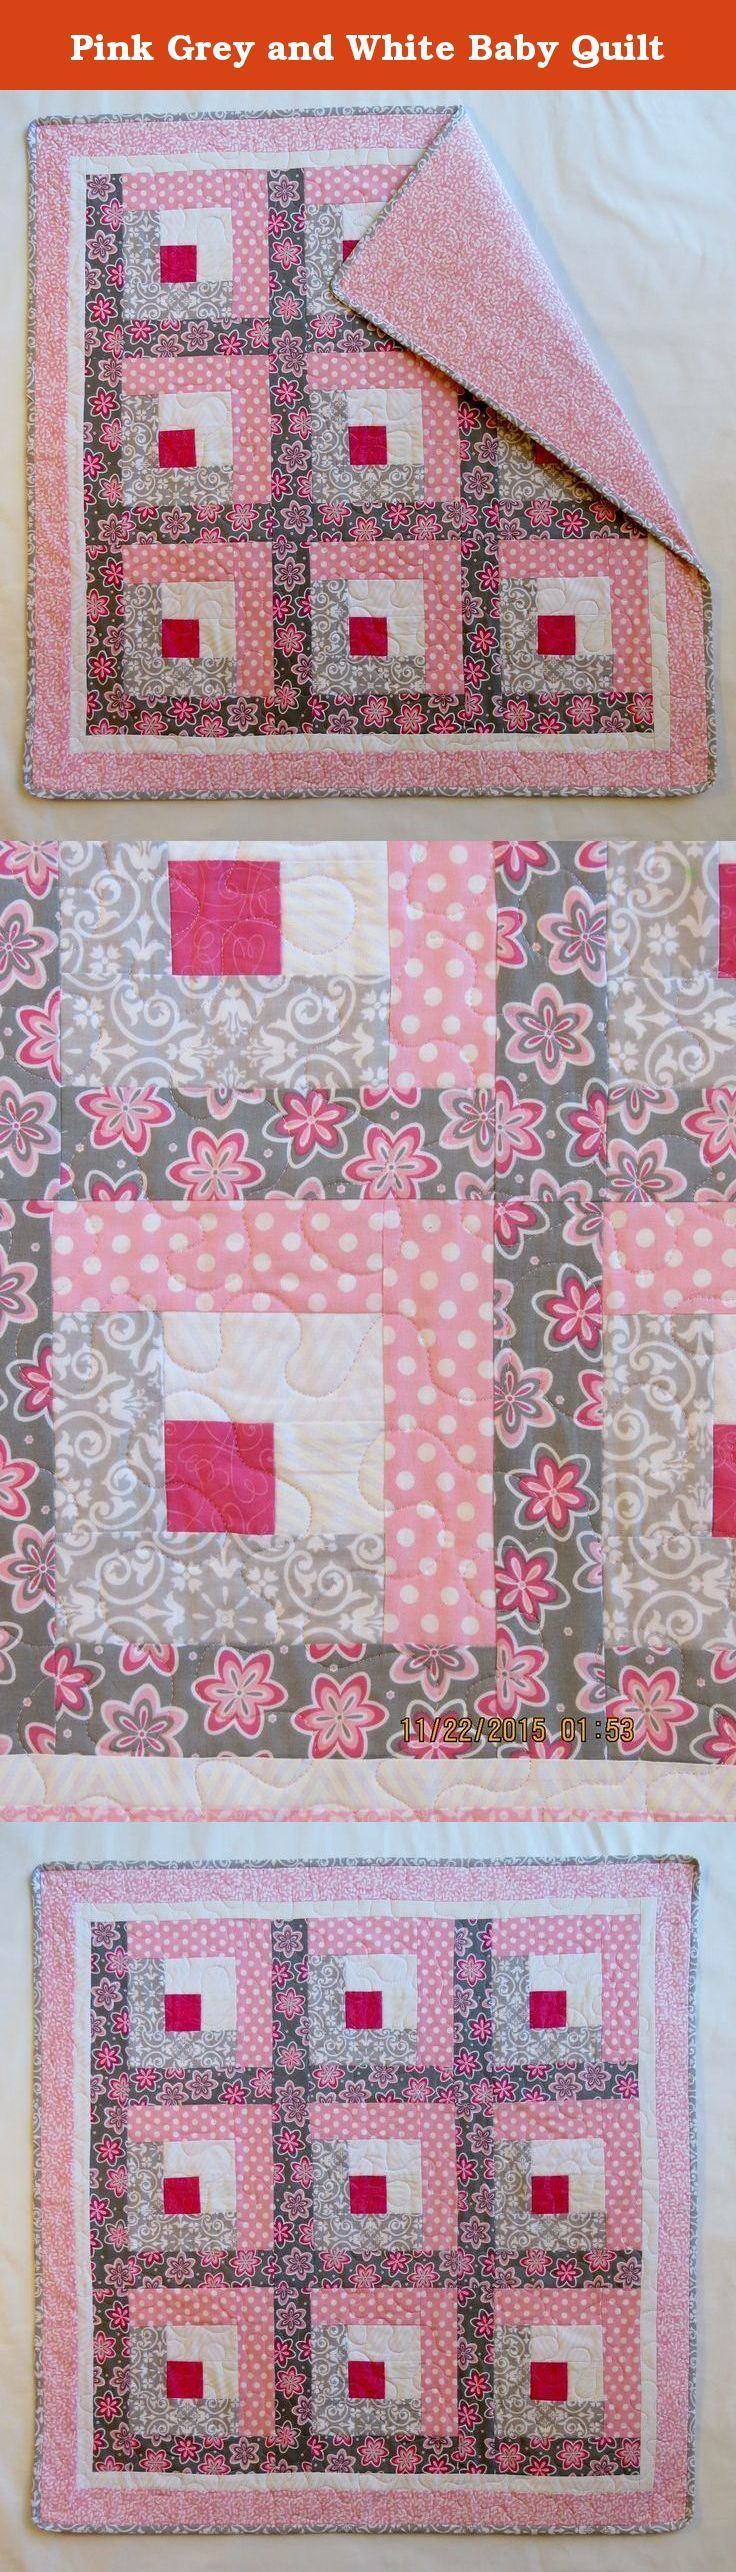 Baby quilts bed covers - Pink Grey And White Baby Quilt Log Cabin Design With A Modern Look